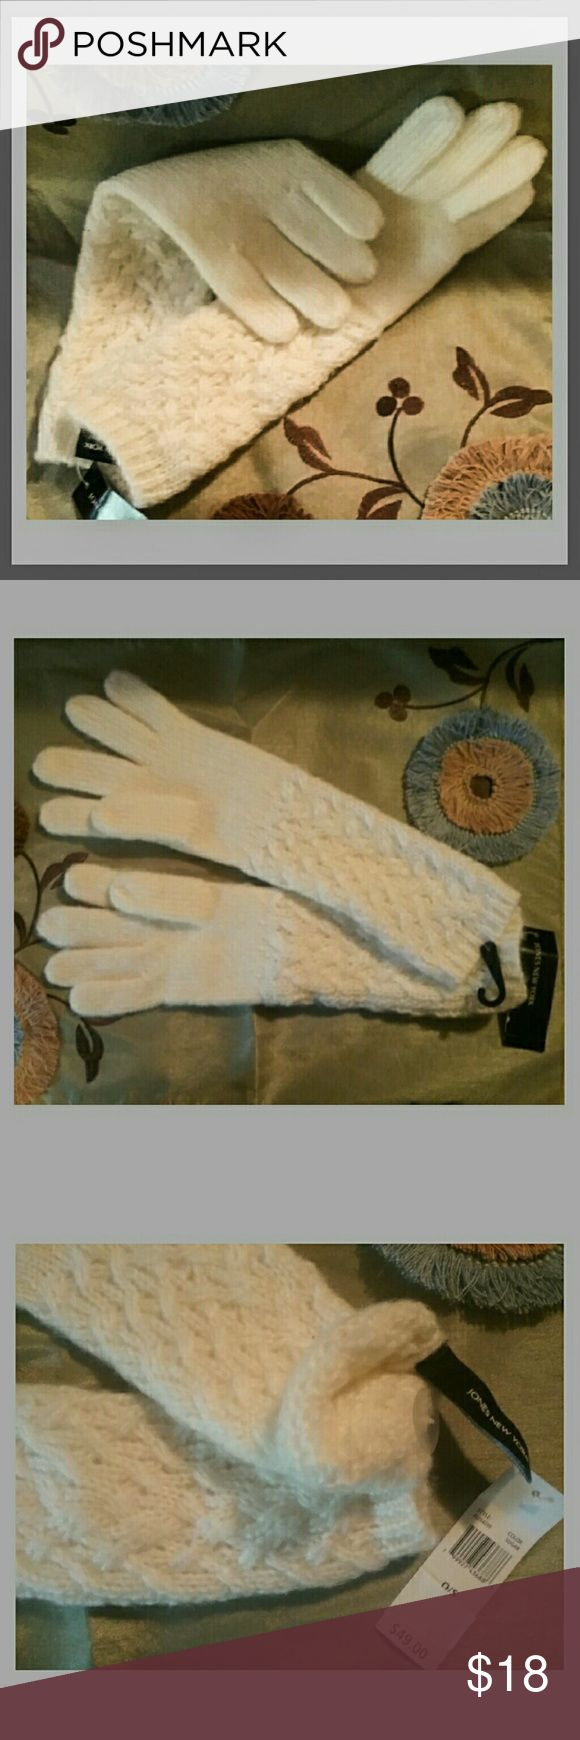 """🎁 Jones New York Cream Gloves NWT This gorgeous pair of sugar knit gloves is made from 100% acrylic. It is one size and dry clean. From the tip of the long finger to the edge, it measures 13 1/2"""". Jones New York Accessories Gloves & Mittens"""